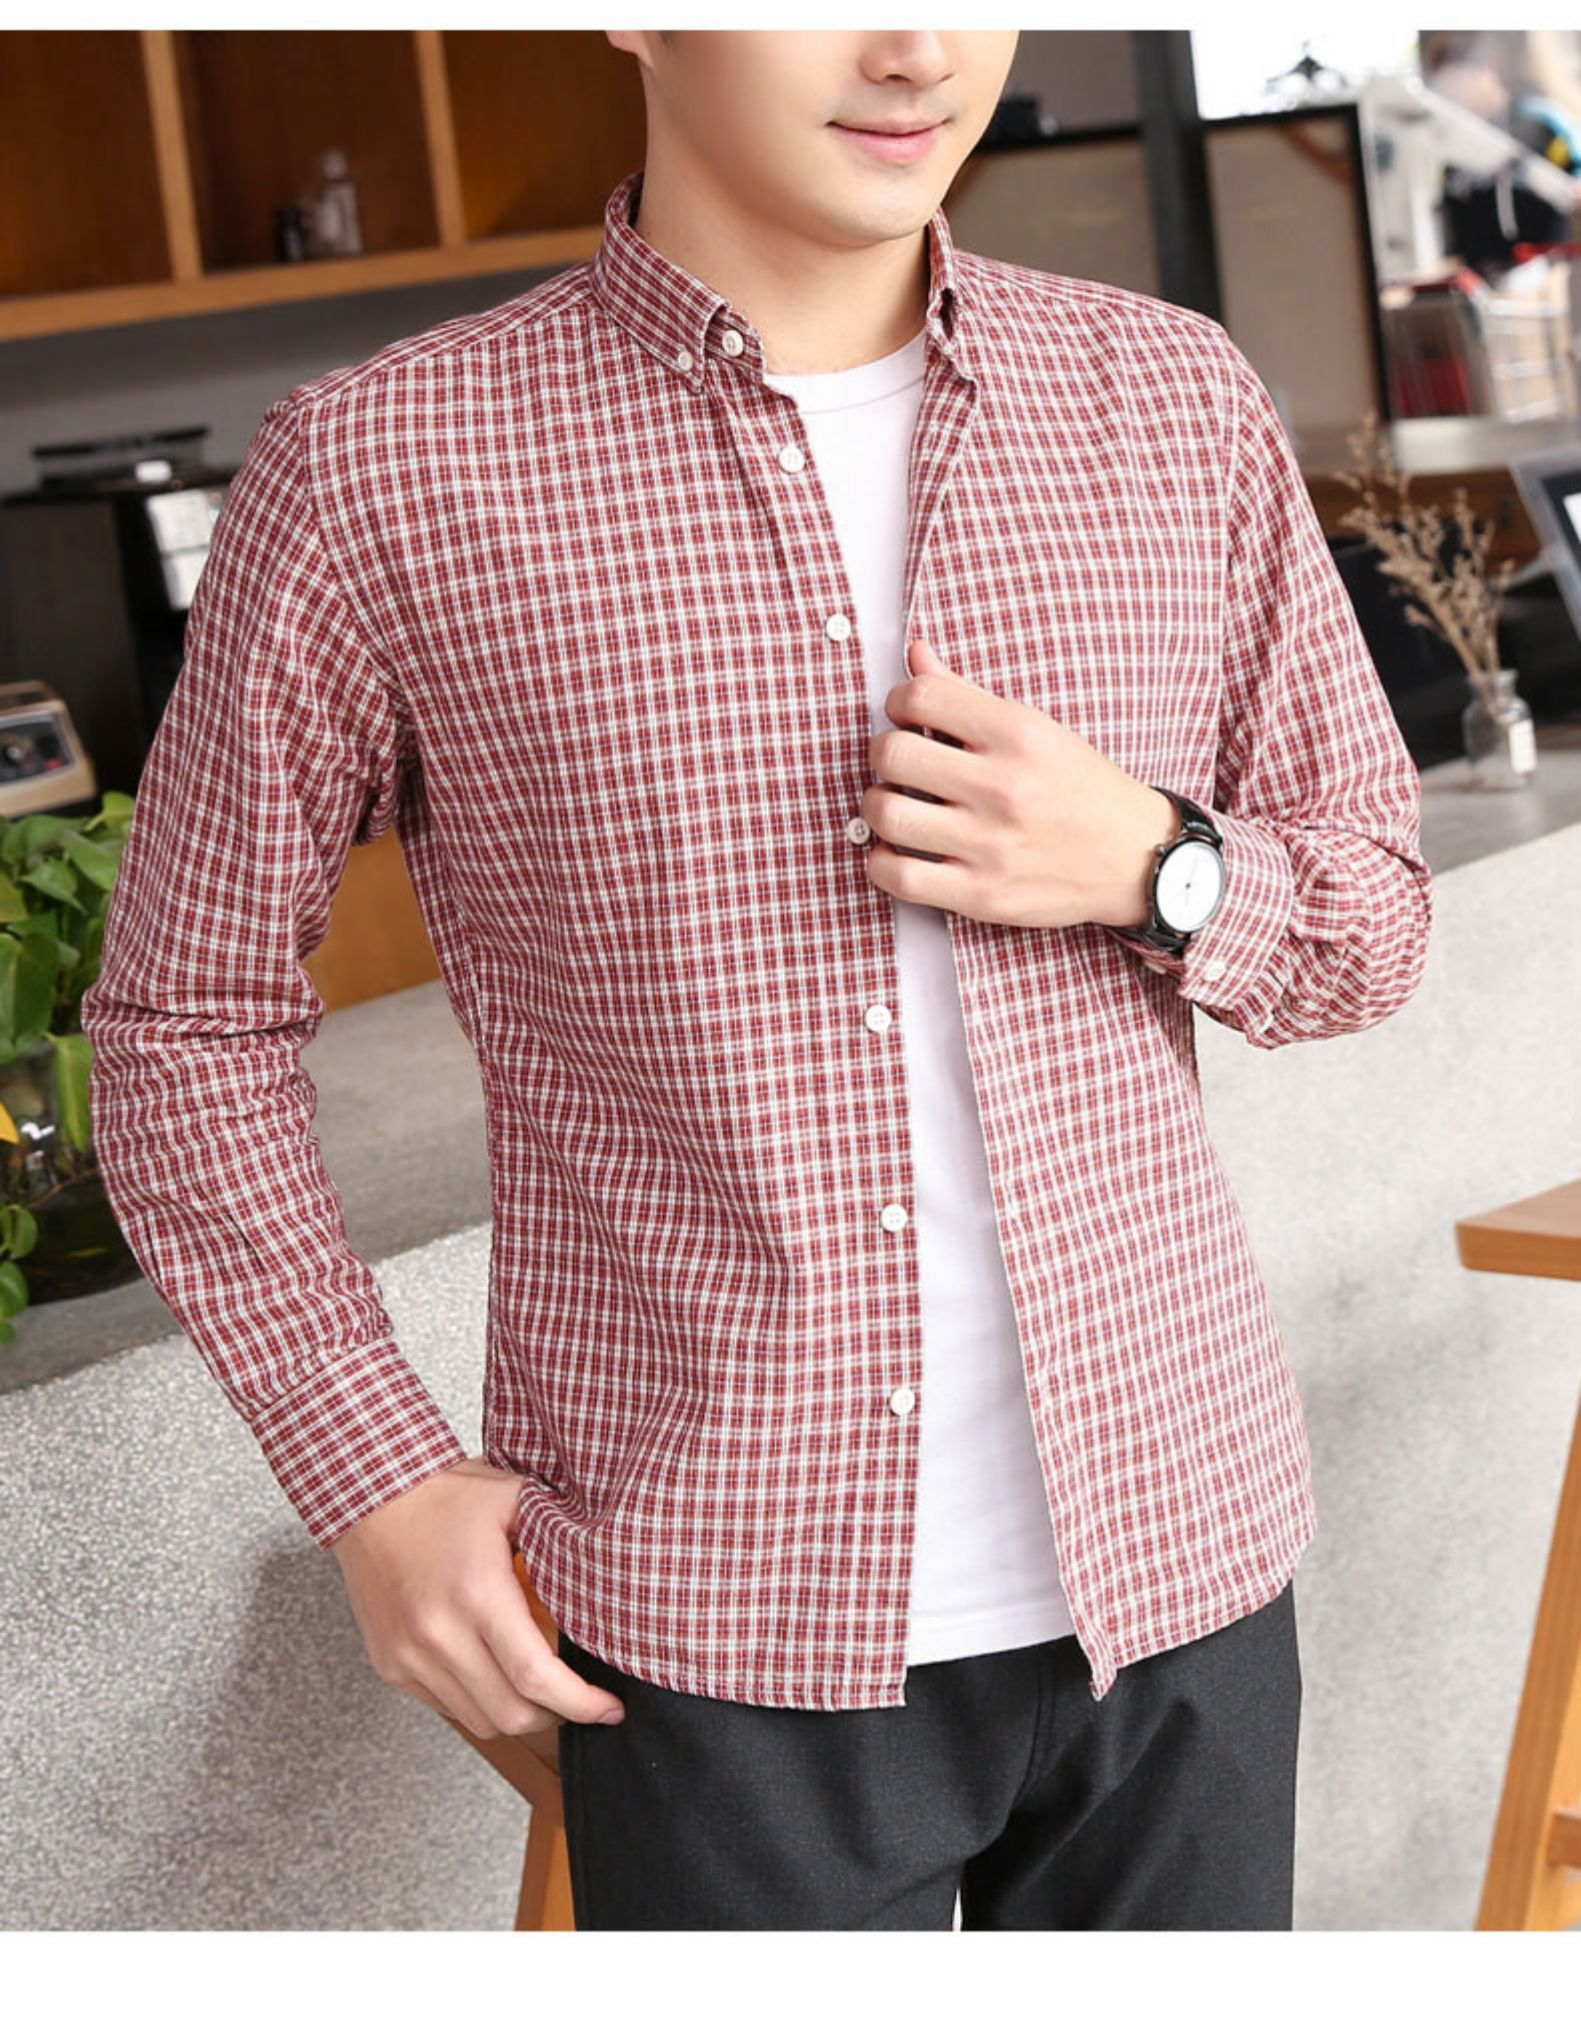 Pure cotton small plaid shirt men's long-sleeved Korean version of the tide brand casual inch clothes spring men's slim handsome shirt jacket 44 Online shopping Bangladesh